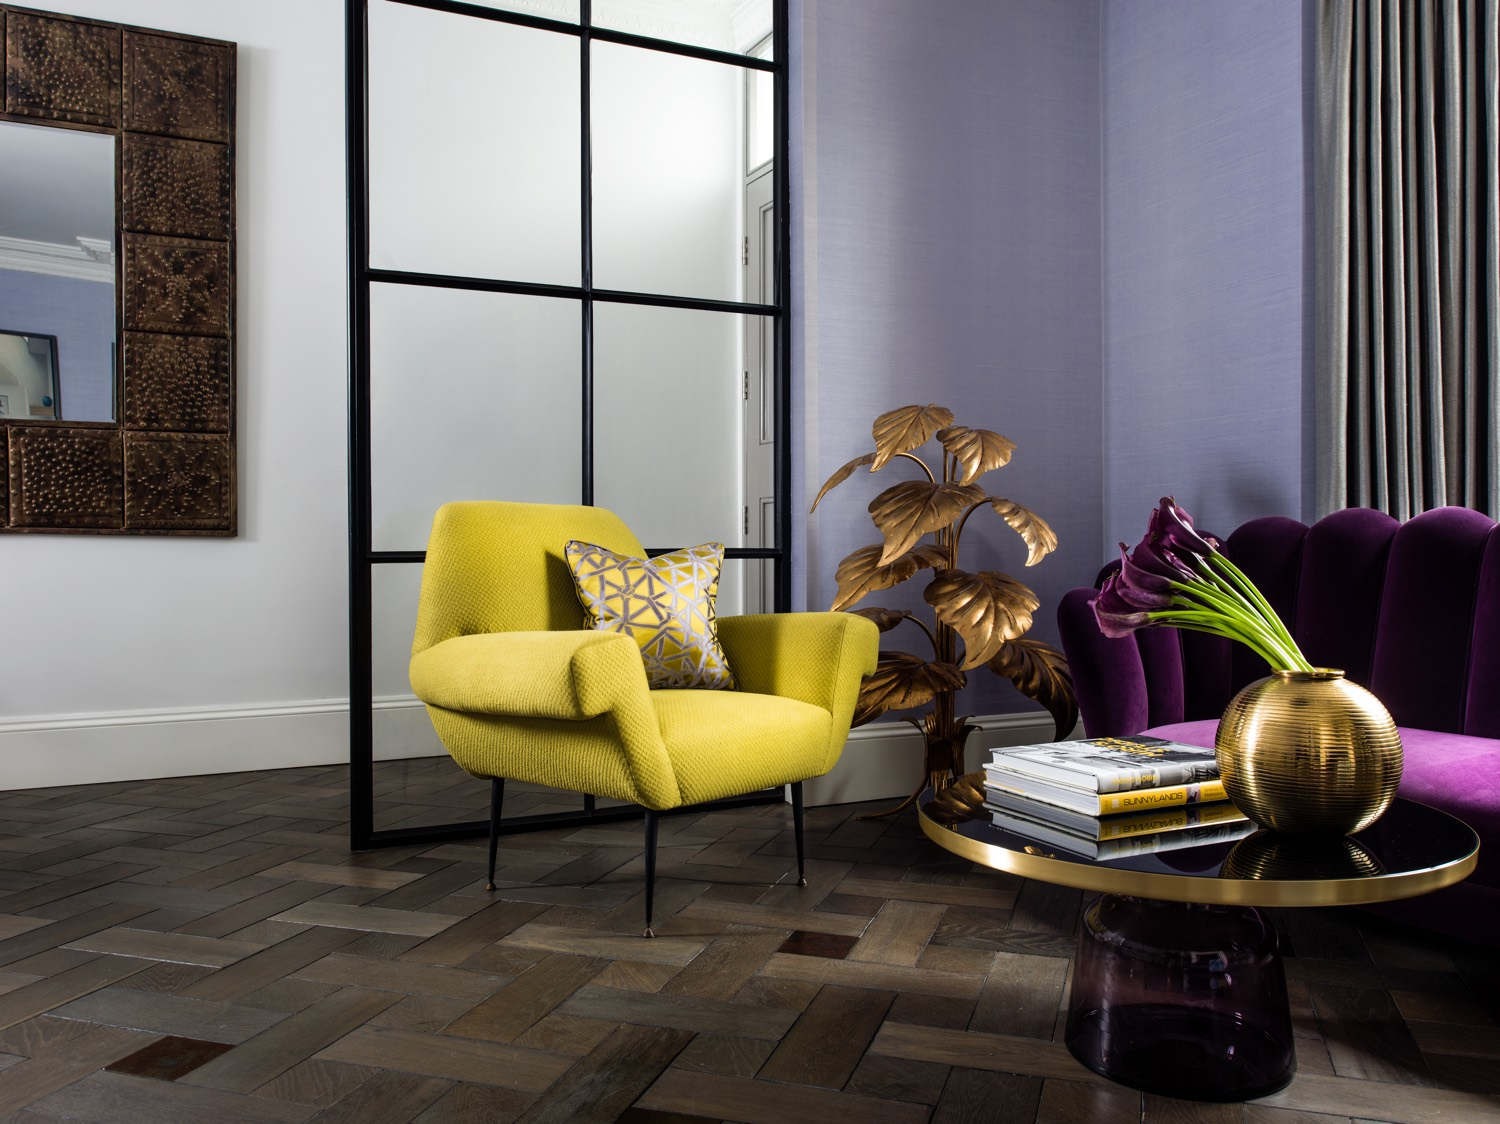 Smoked oak flooring in a basket weave pattern with metal accents, Critall Window partition separates the Reception Room from the front entrance. Vintage Chair, Lamp and Loveseat add retro glamour.